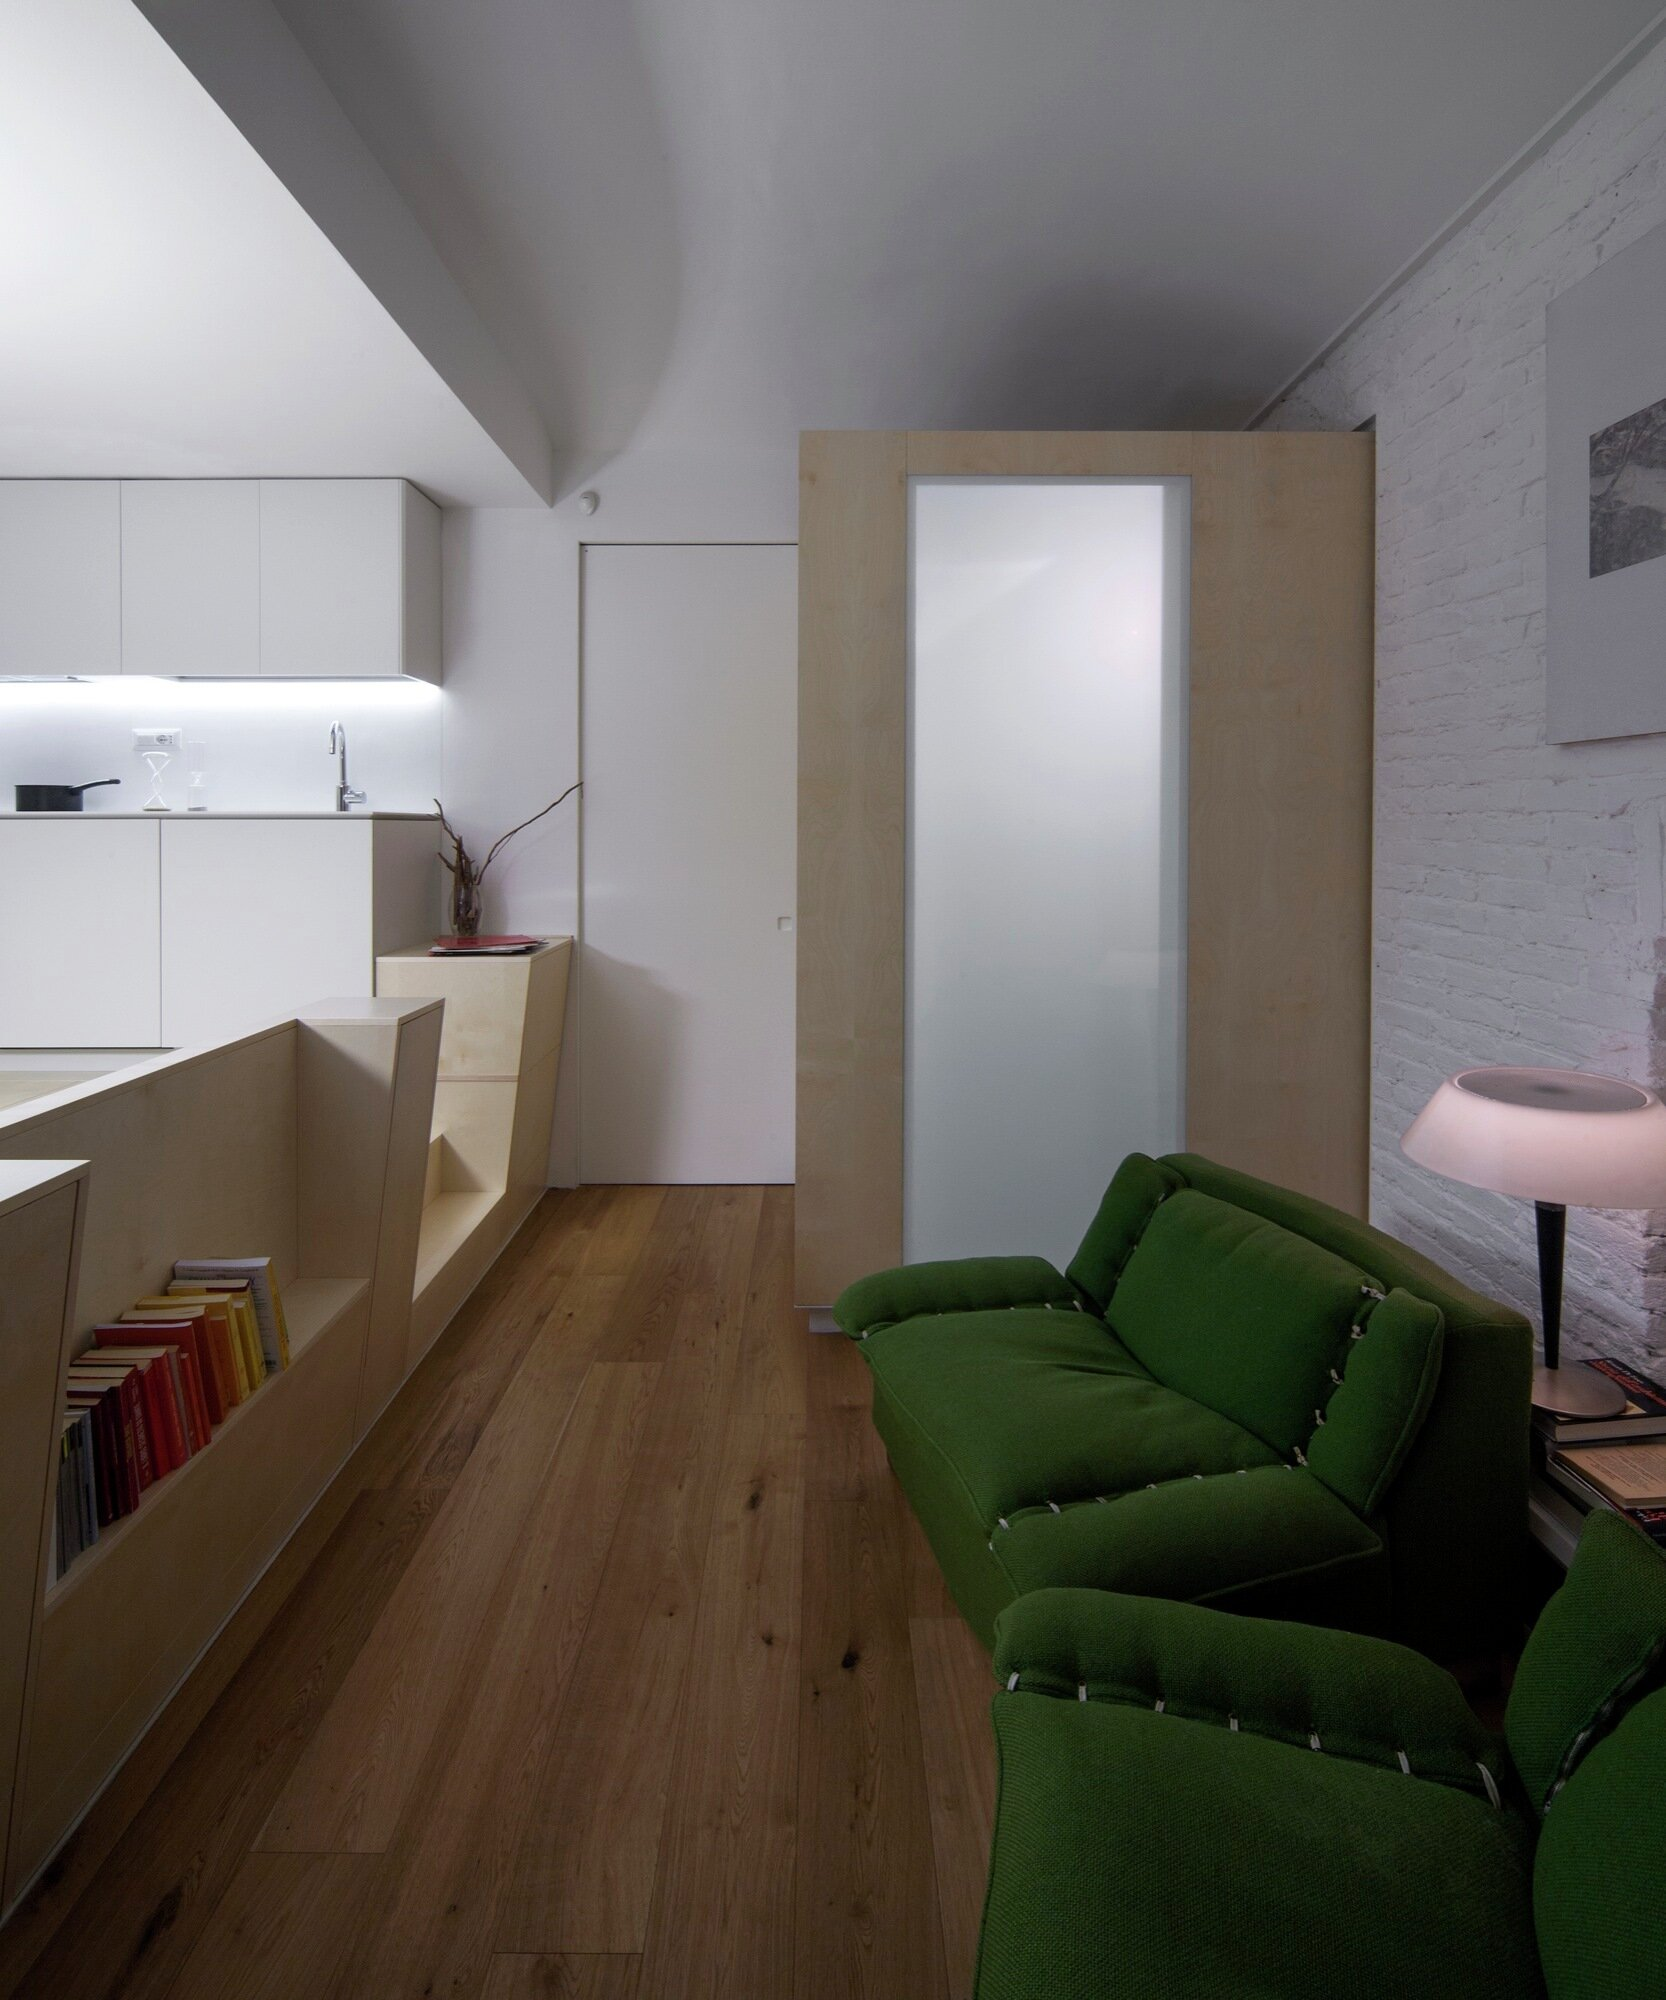 BLA Transform a Run-Down Apartment into A Smart Small Home